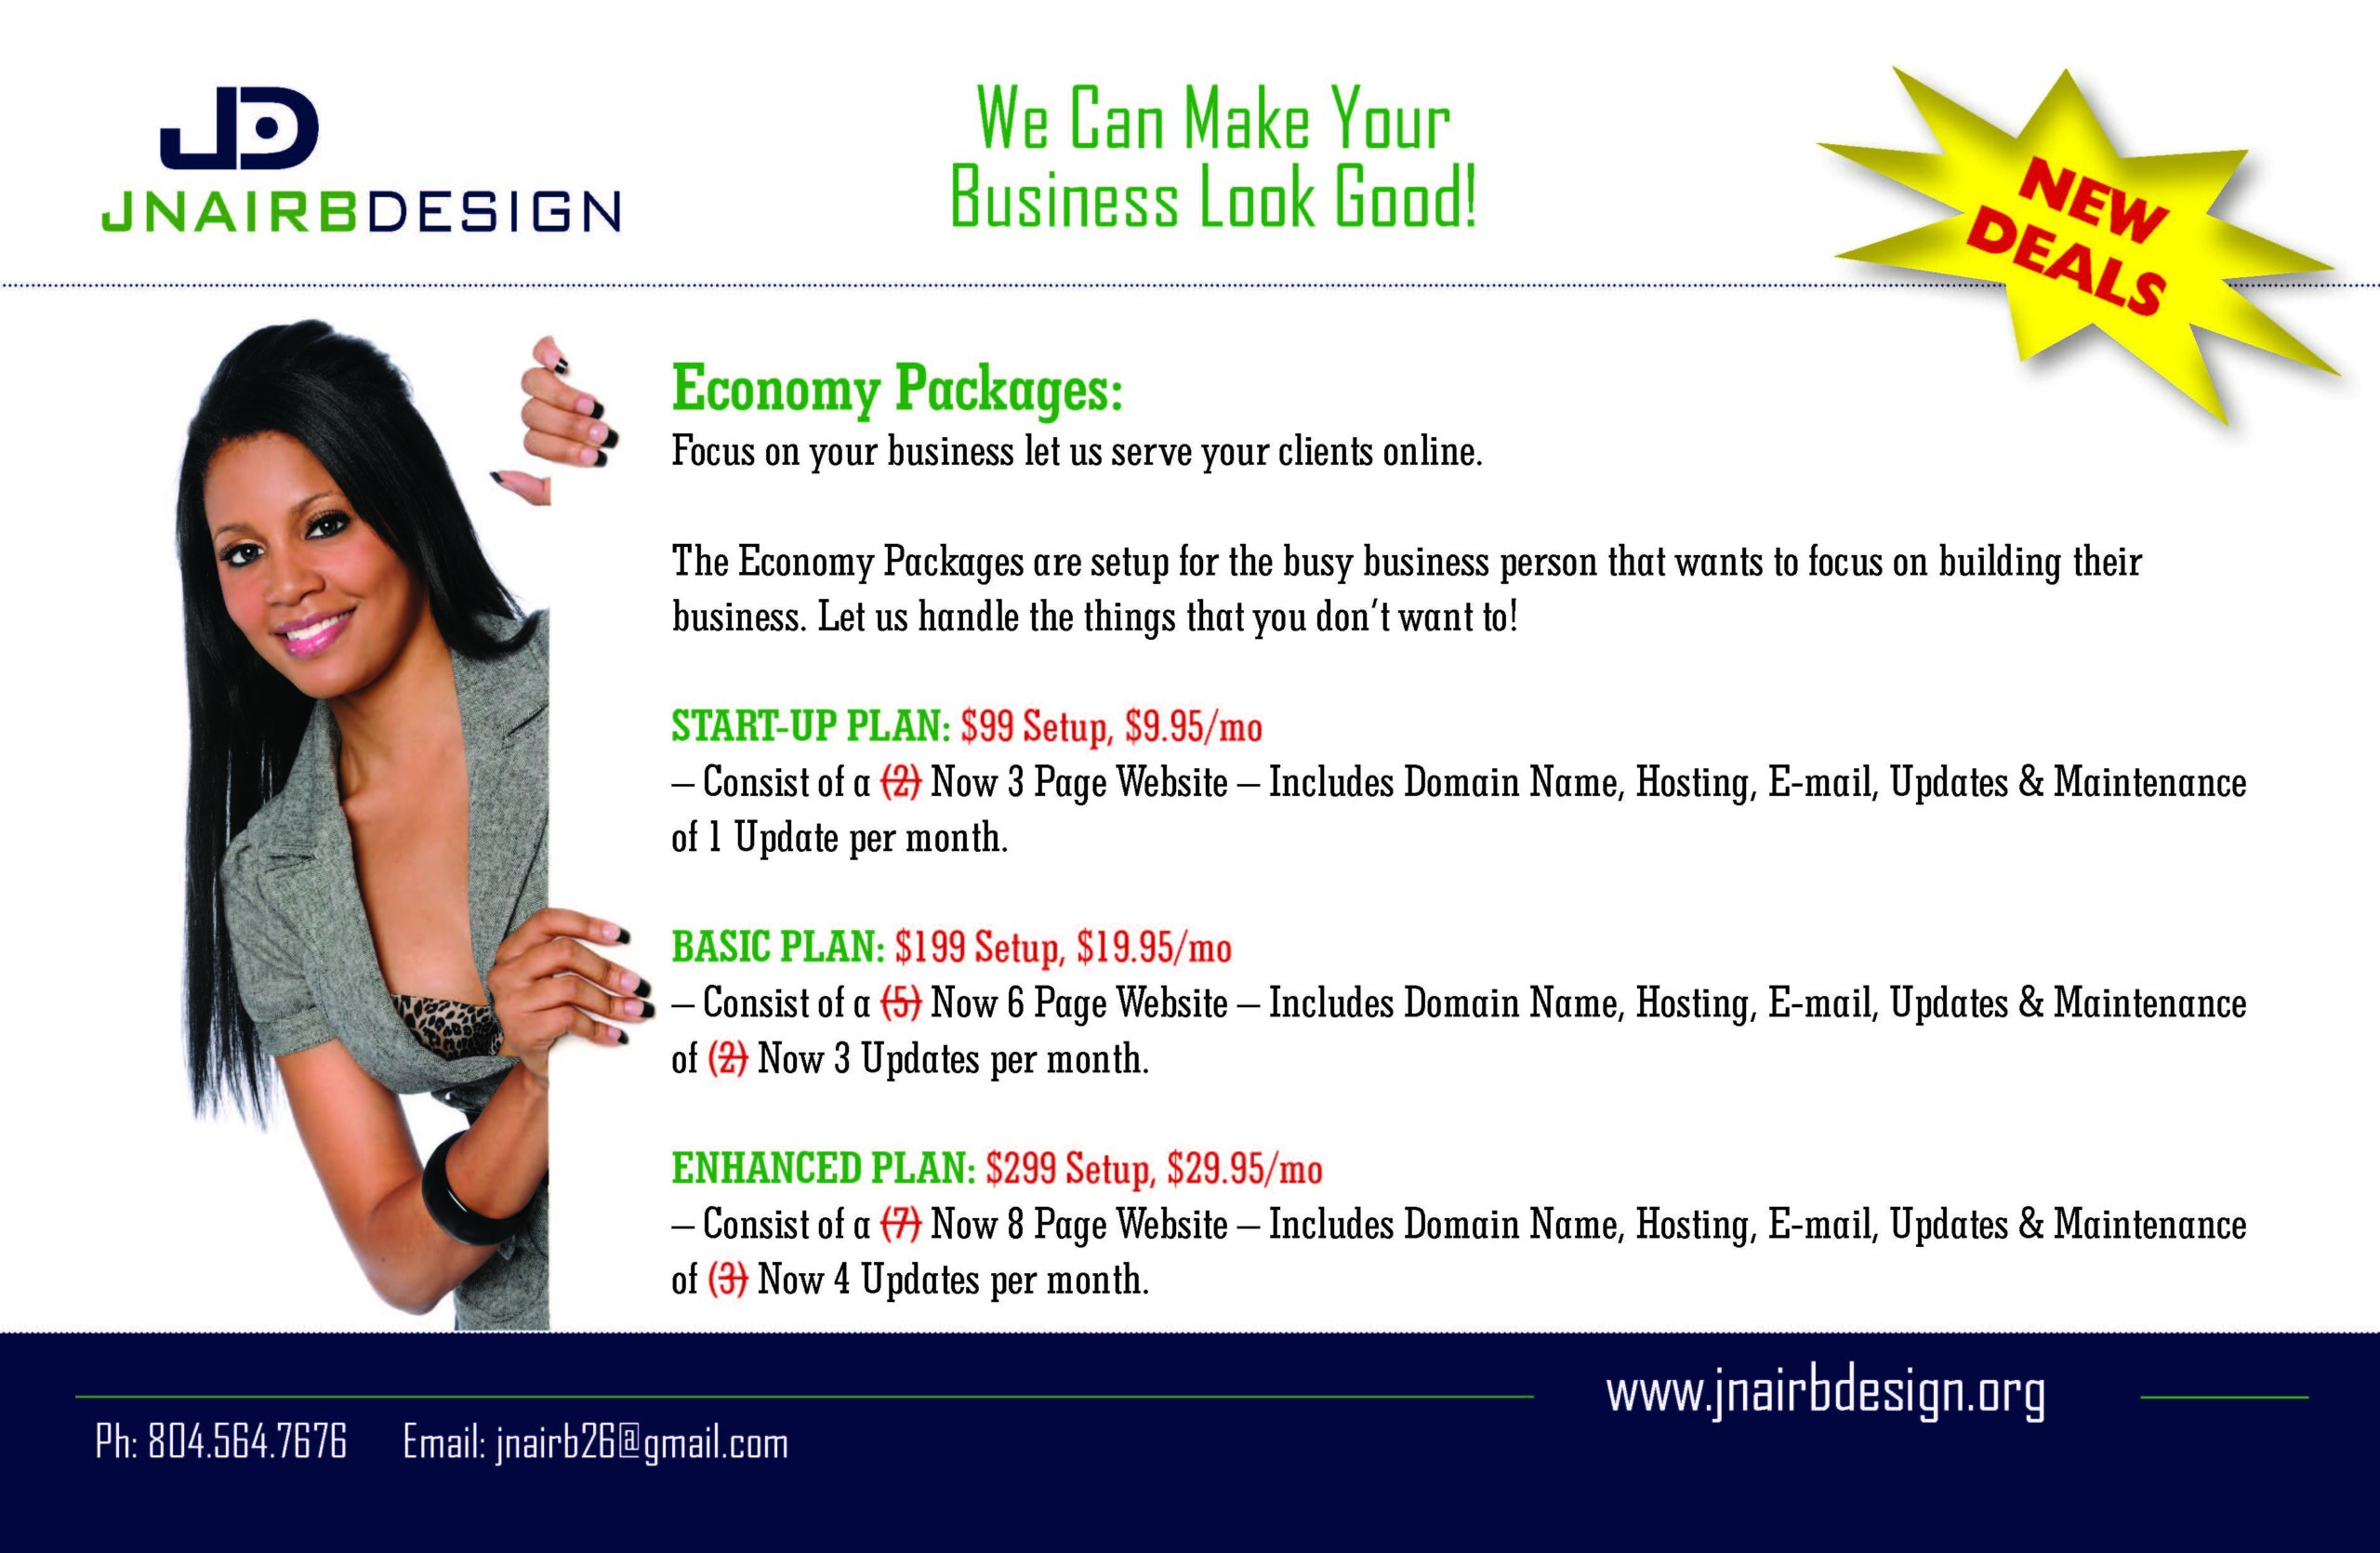 Economy Packages: Focus on your business let us serve your clients online.